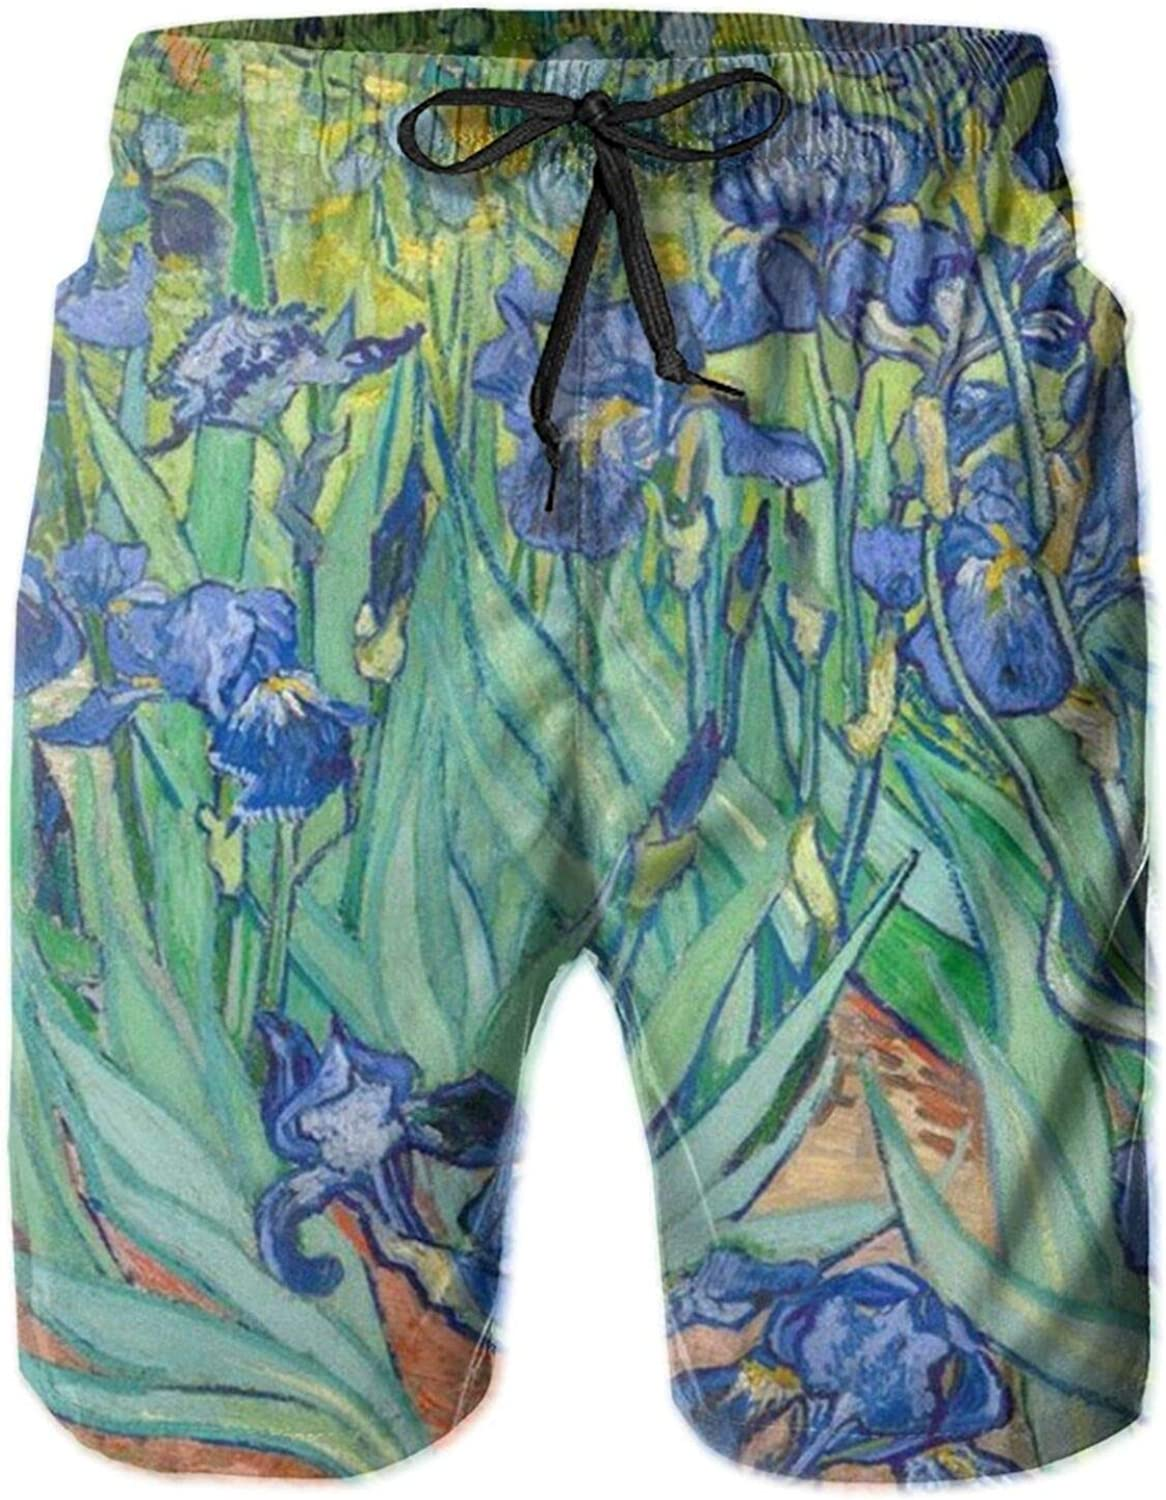 Yt92Pl@00 Men's 100% Max 80% OFF Polyester free Oil Painting Flowers Irises Beach